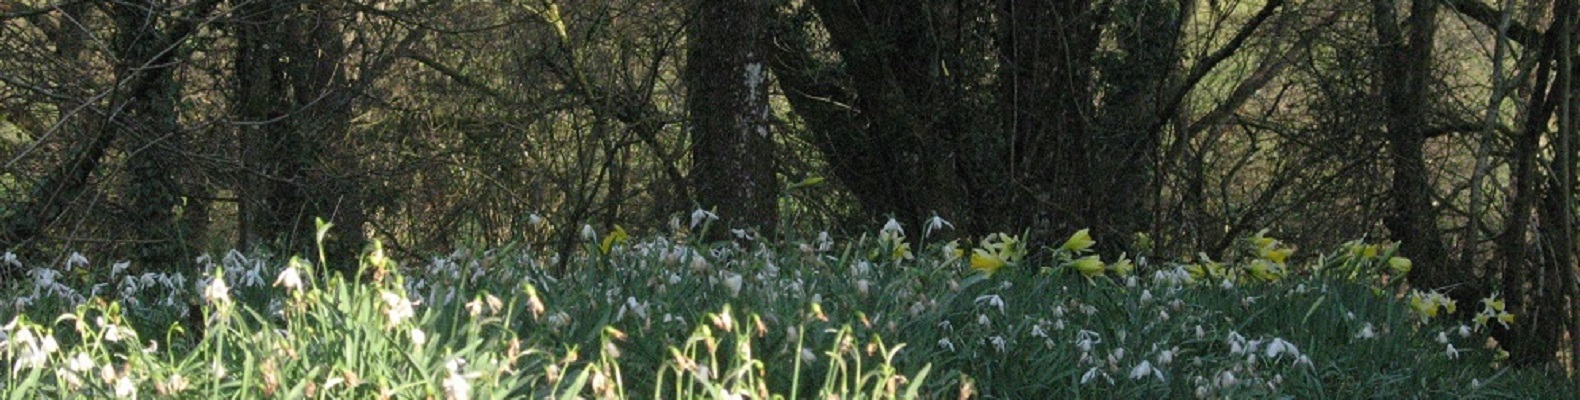 Woodland daffodils and snowdrops